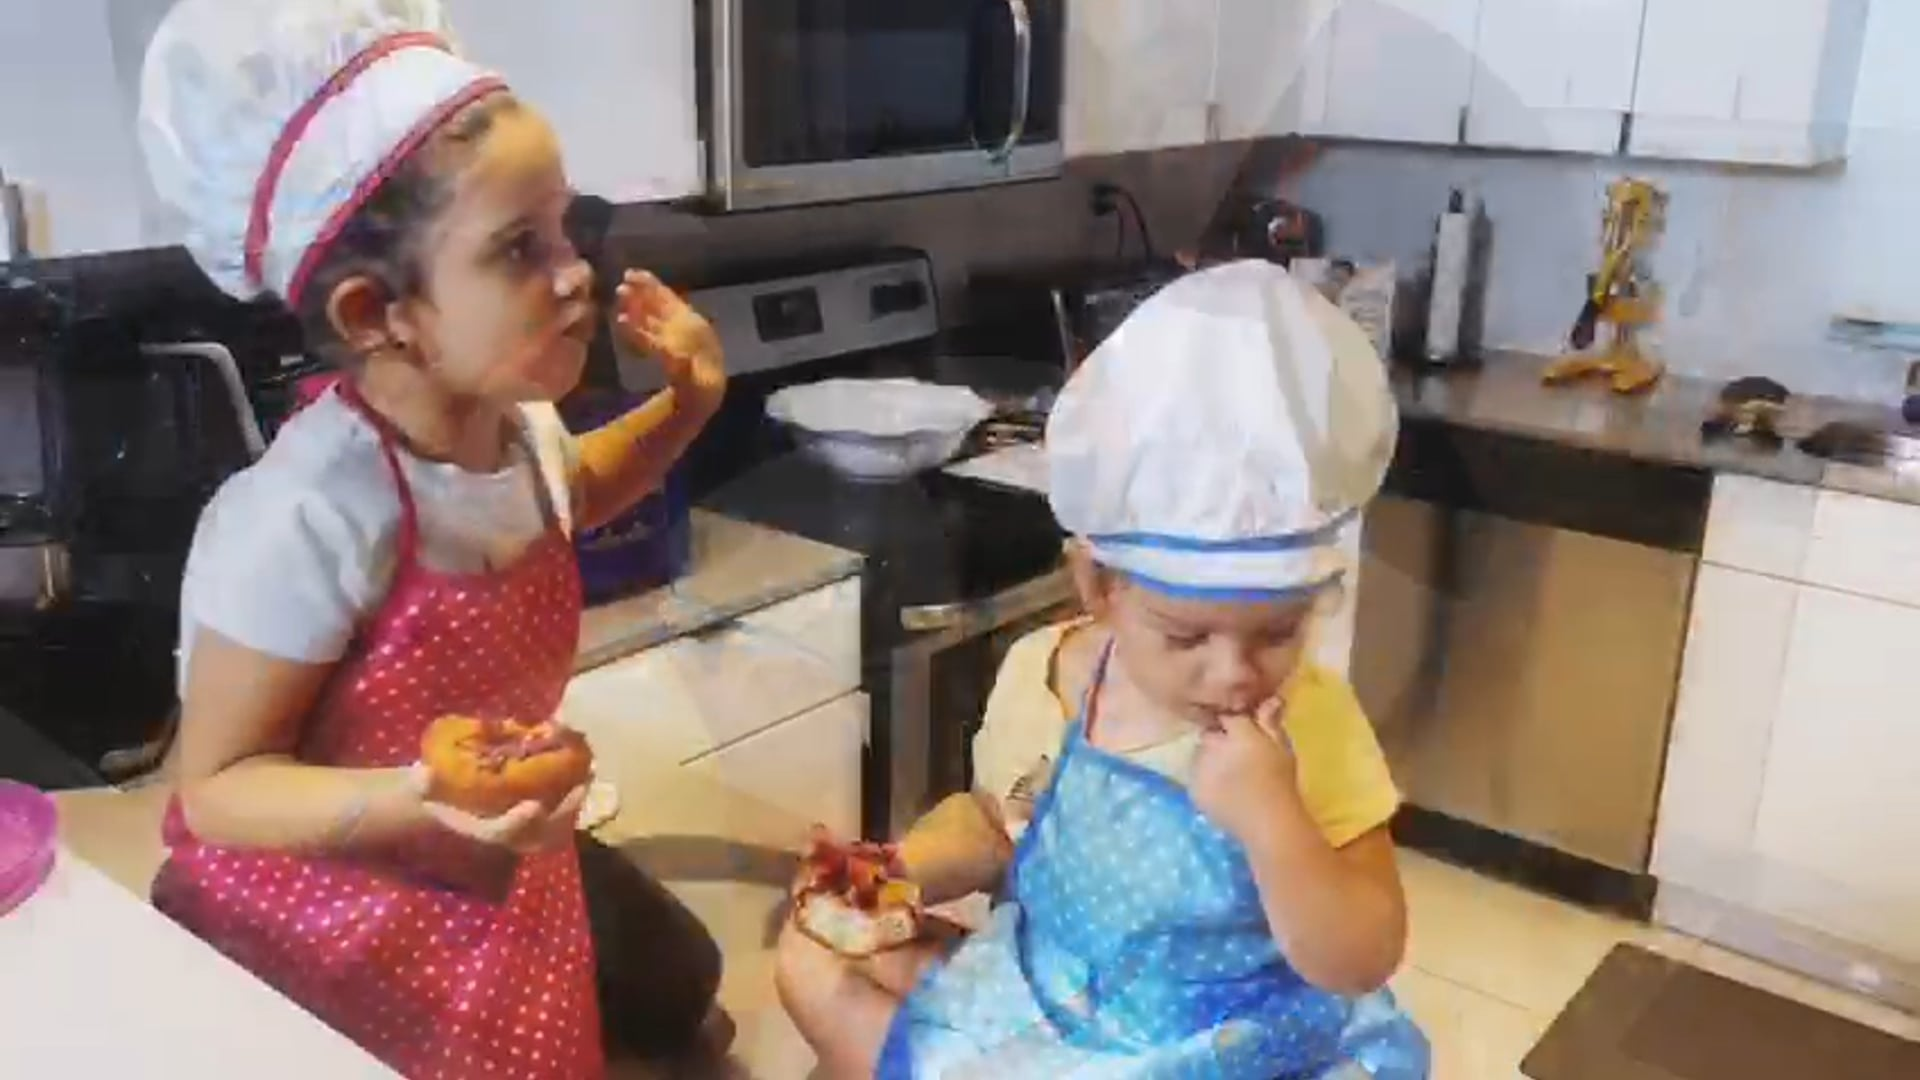 Jesus Diaz - Chef Yisus - Cooking with Daughters